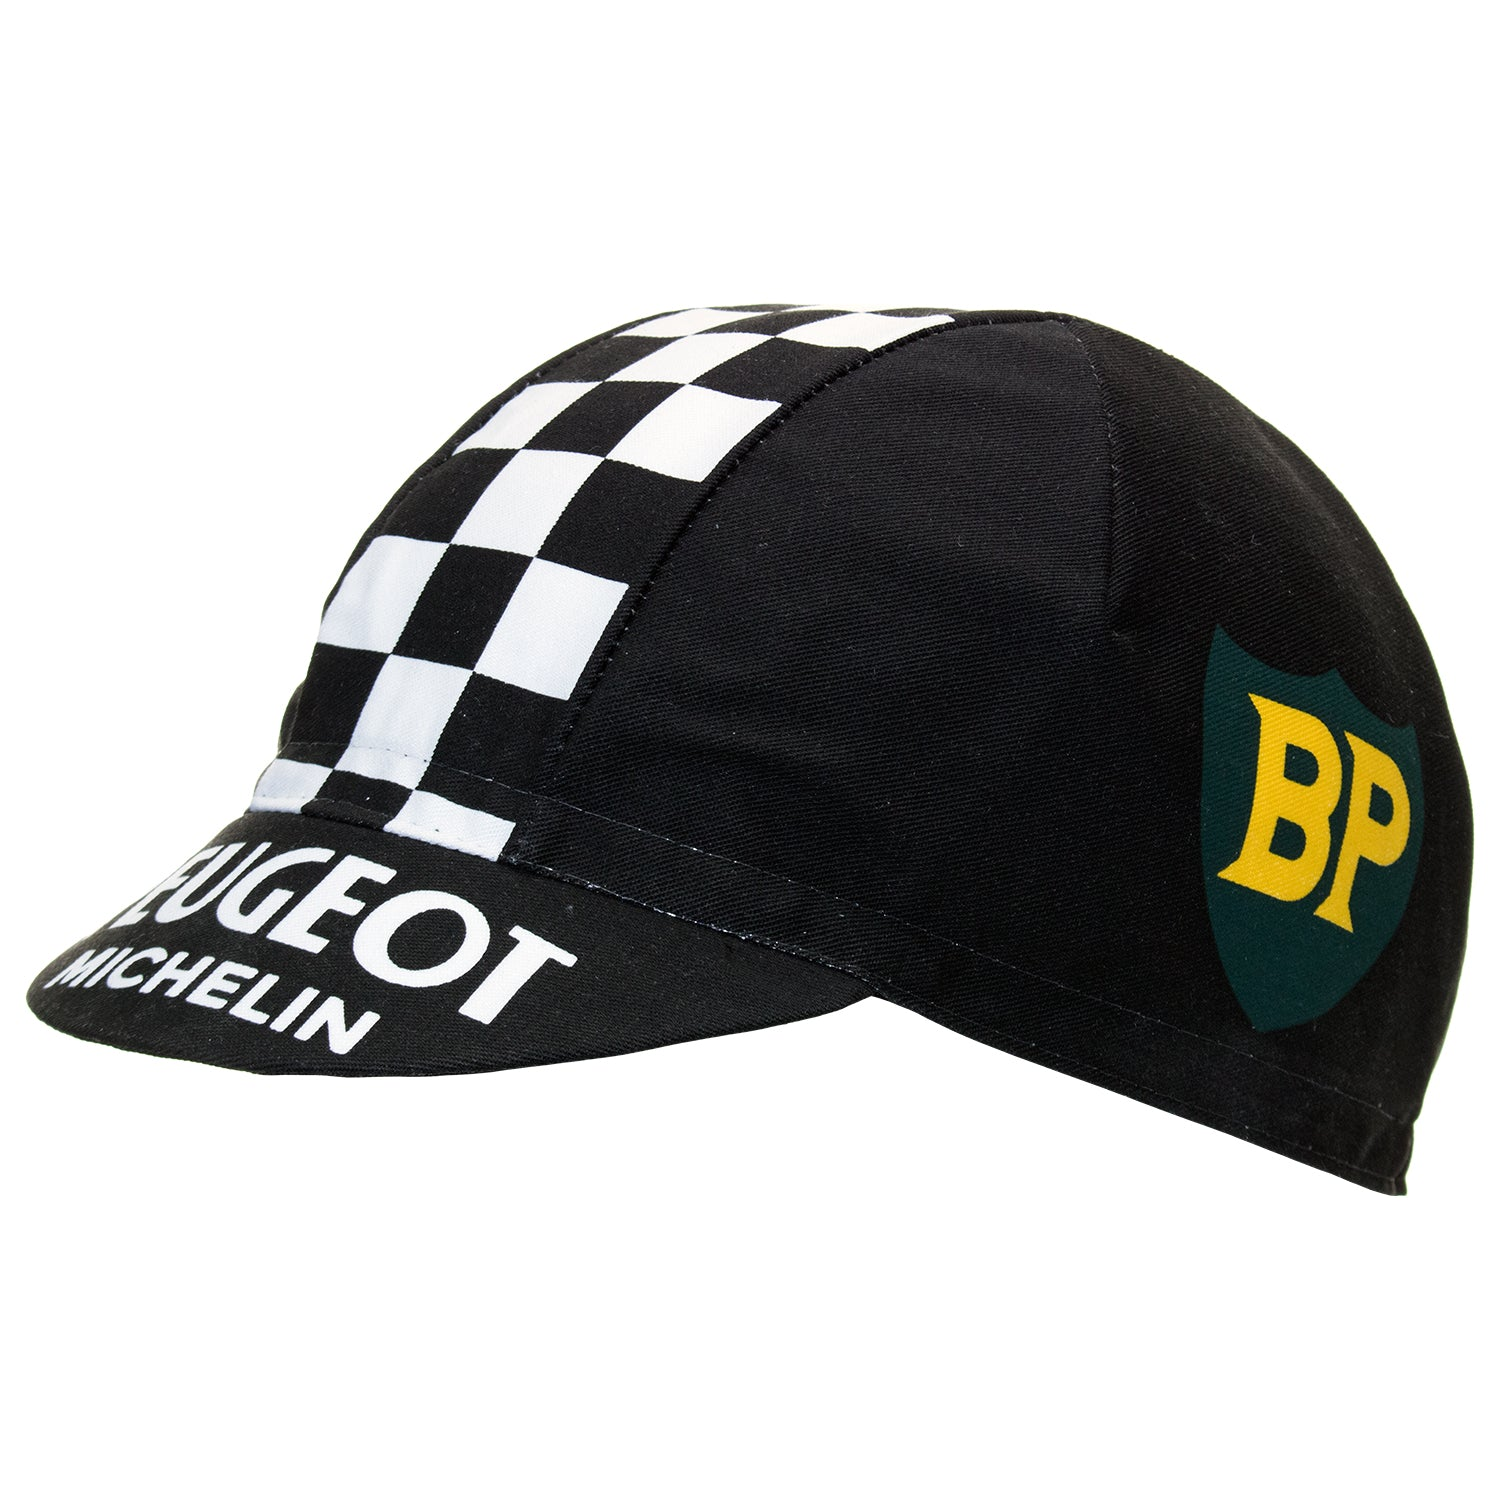 Peugeot BP Retro Black Cotton Cycling Cap